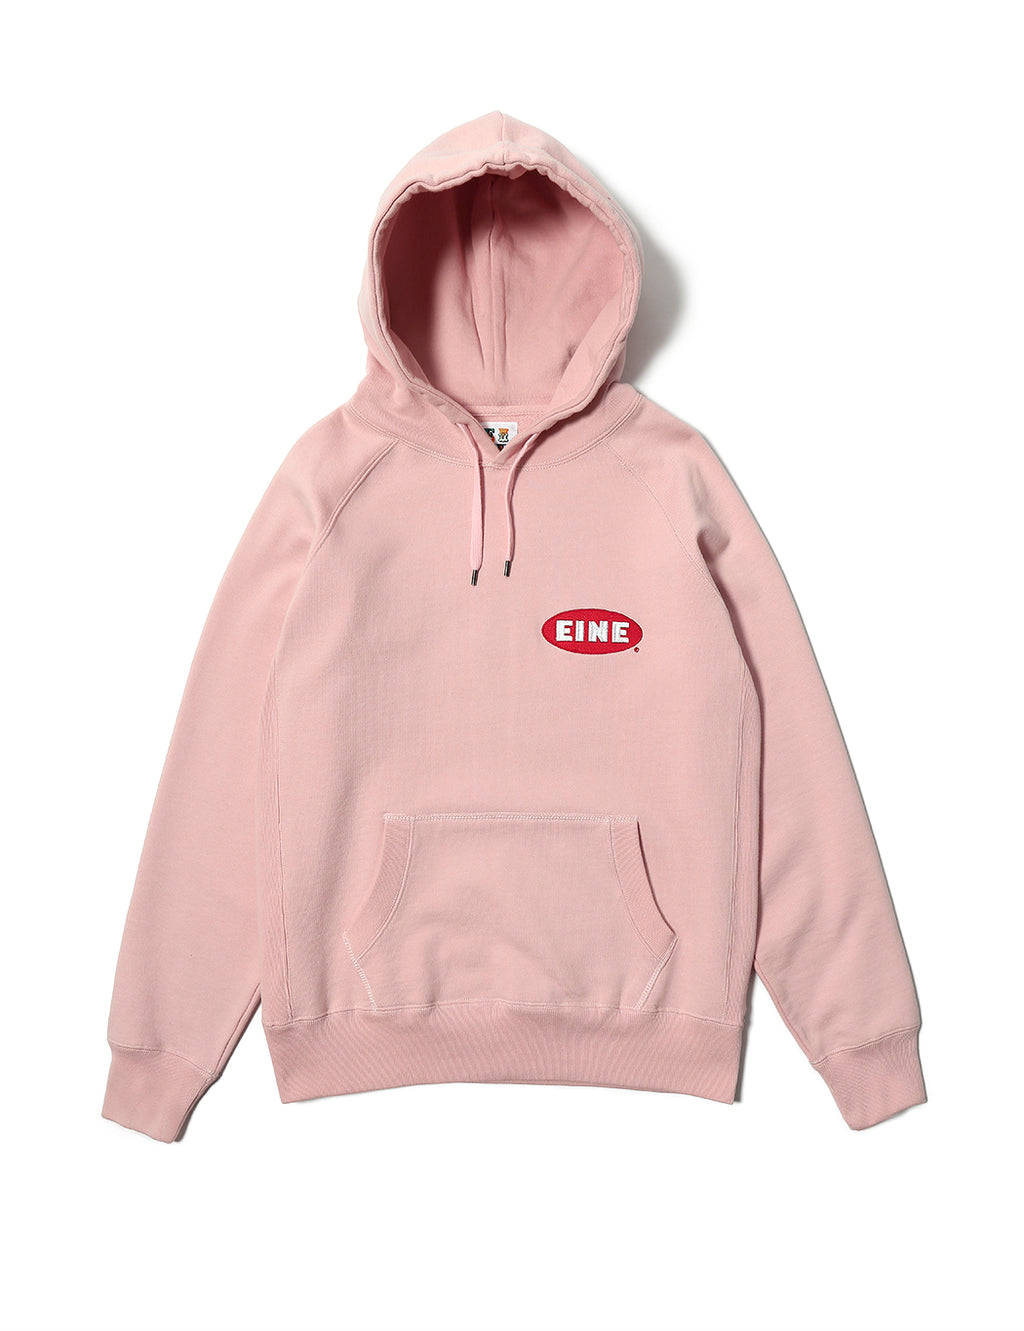 EINE Paint Hooded Sweat - Rose Pink